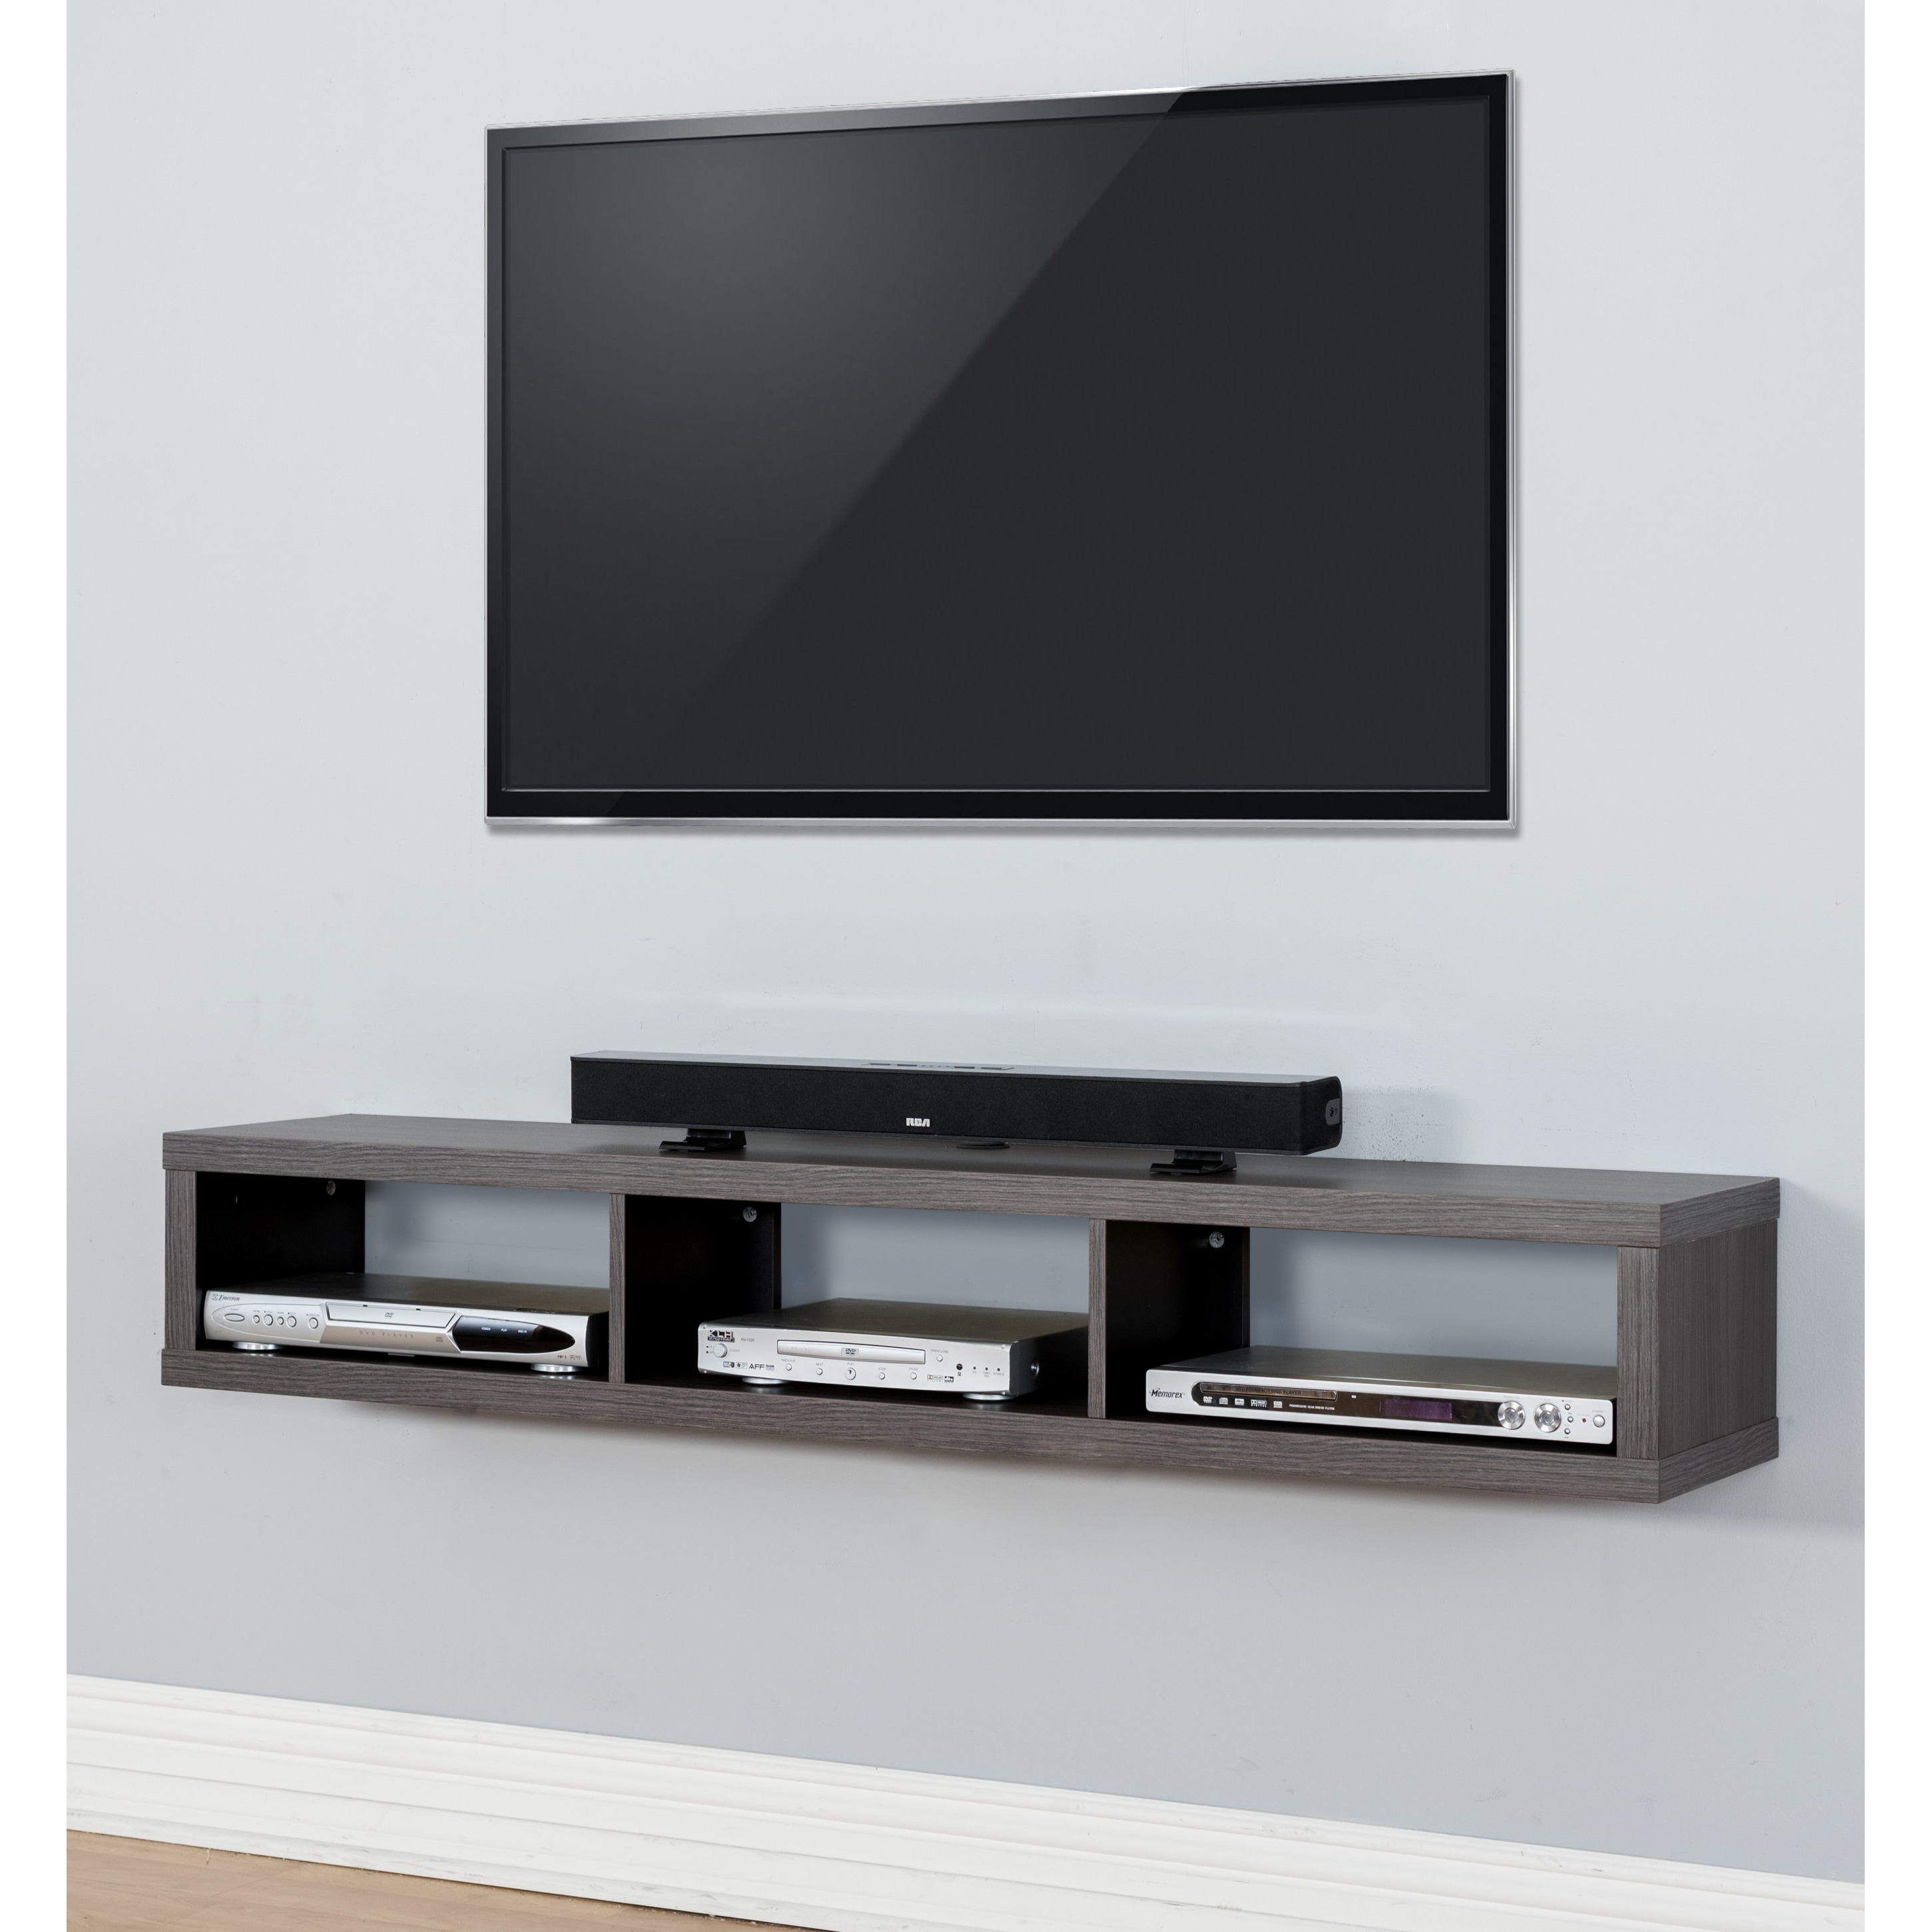 Thin 60 Inch Wall Mount Tv Console Free Shipping Today  # Etagere Tv Bois